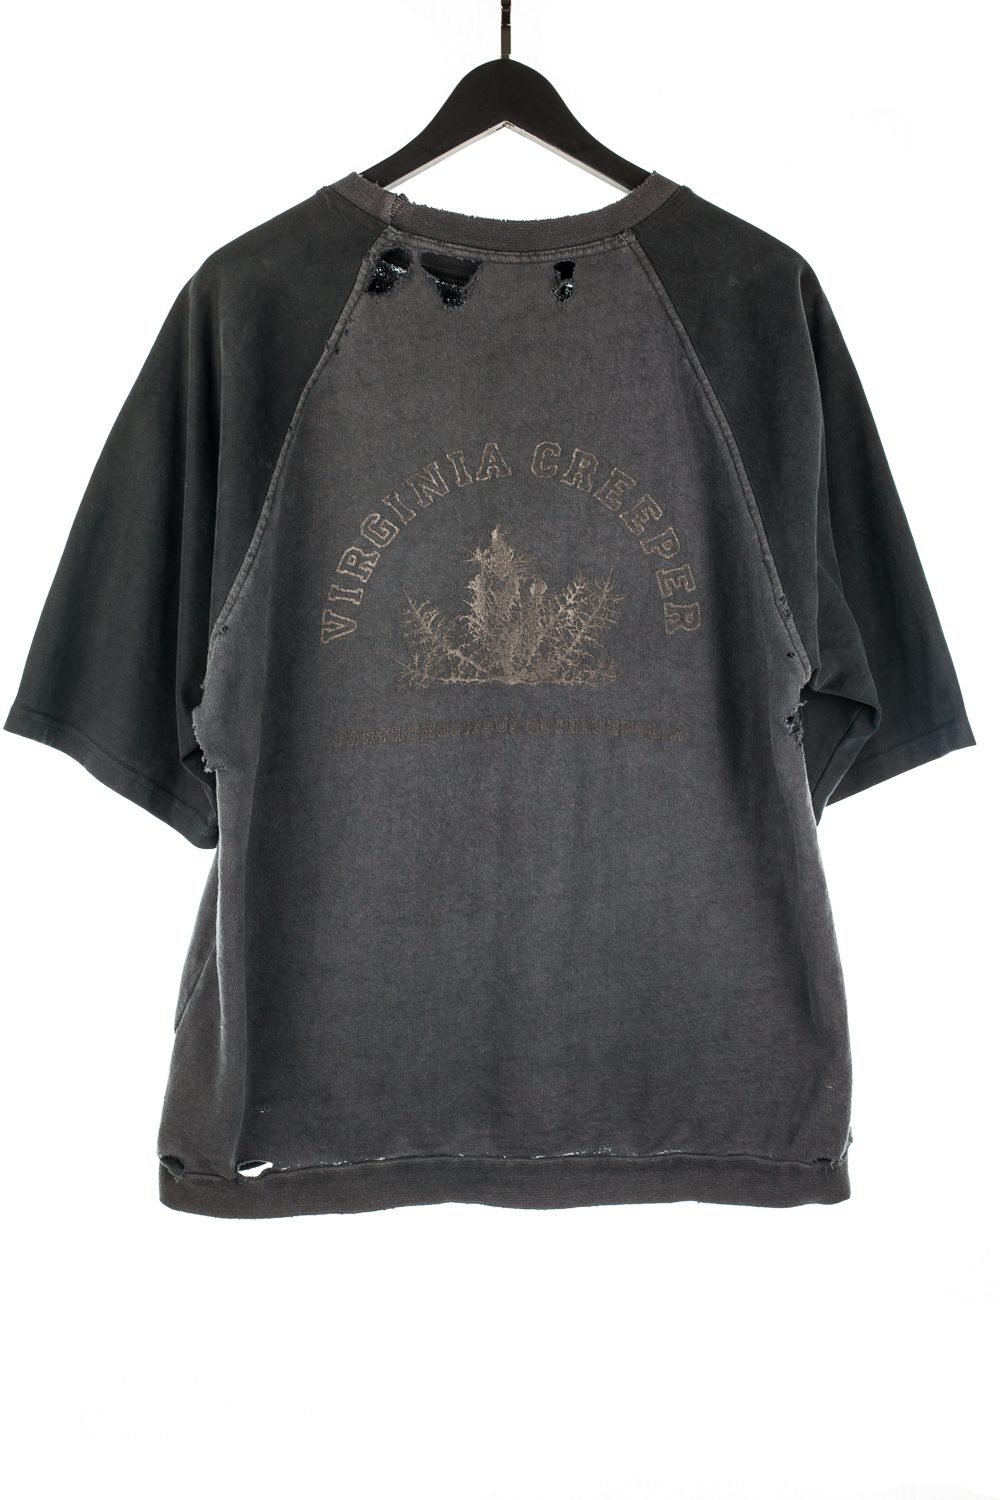 "AW02 ""Virginia Creeper"" Baseball Sweat"